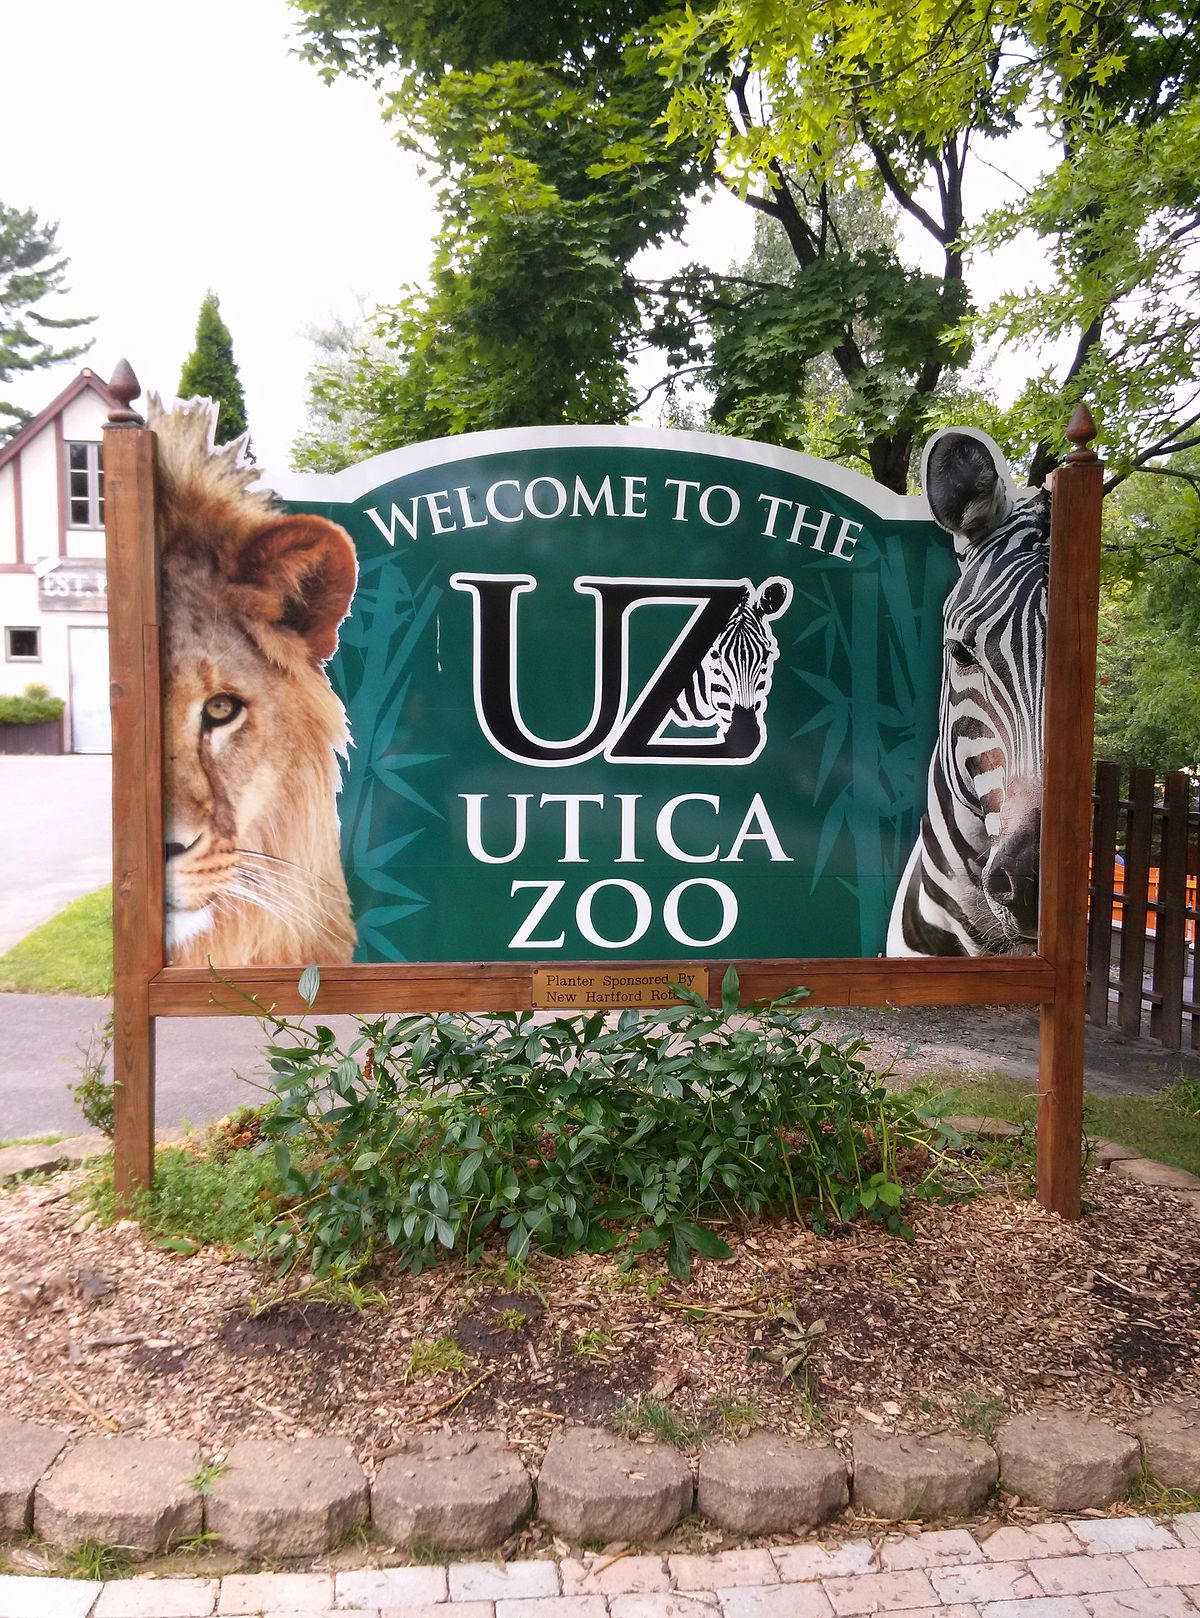 Utica Zoo Wikipedia